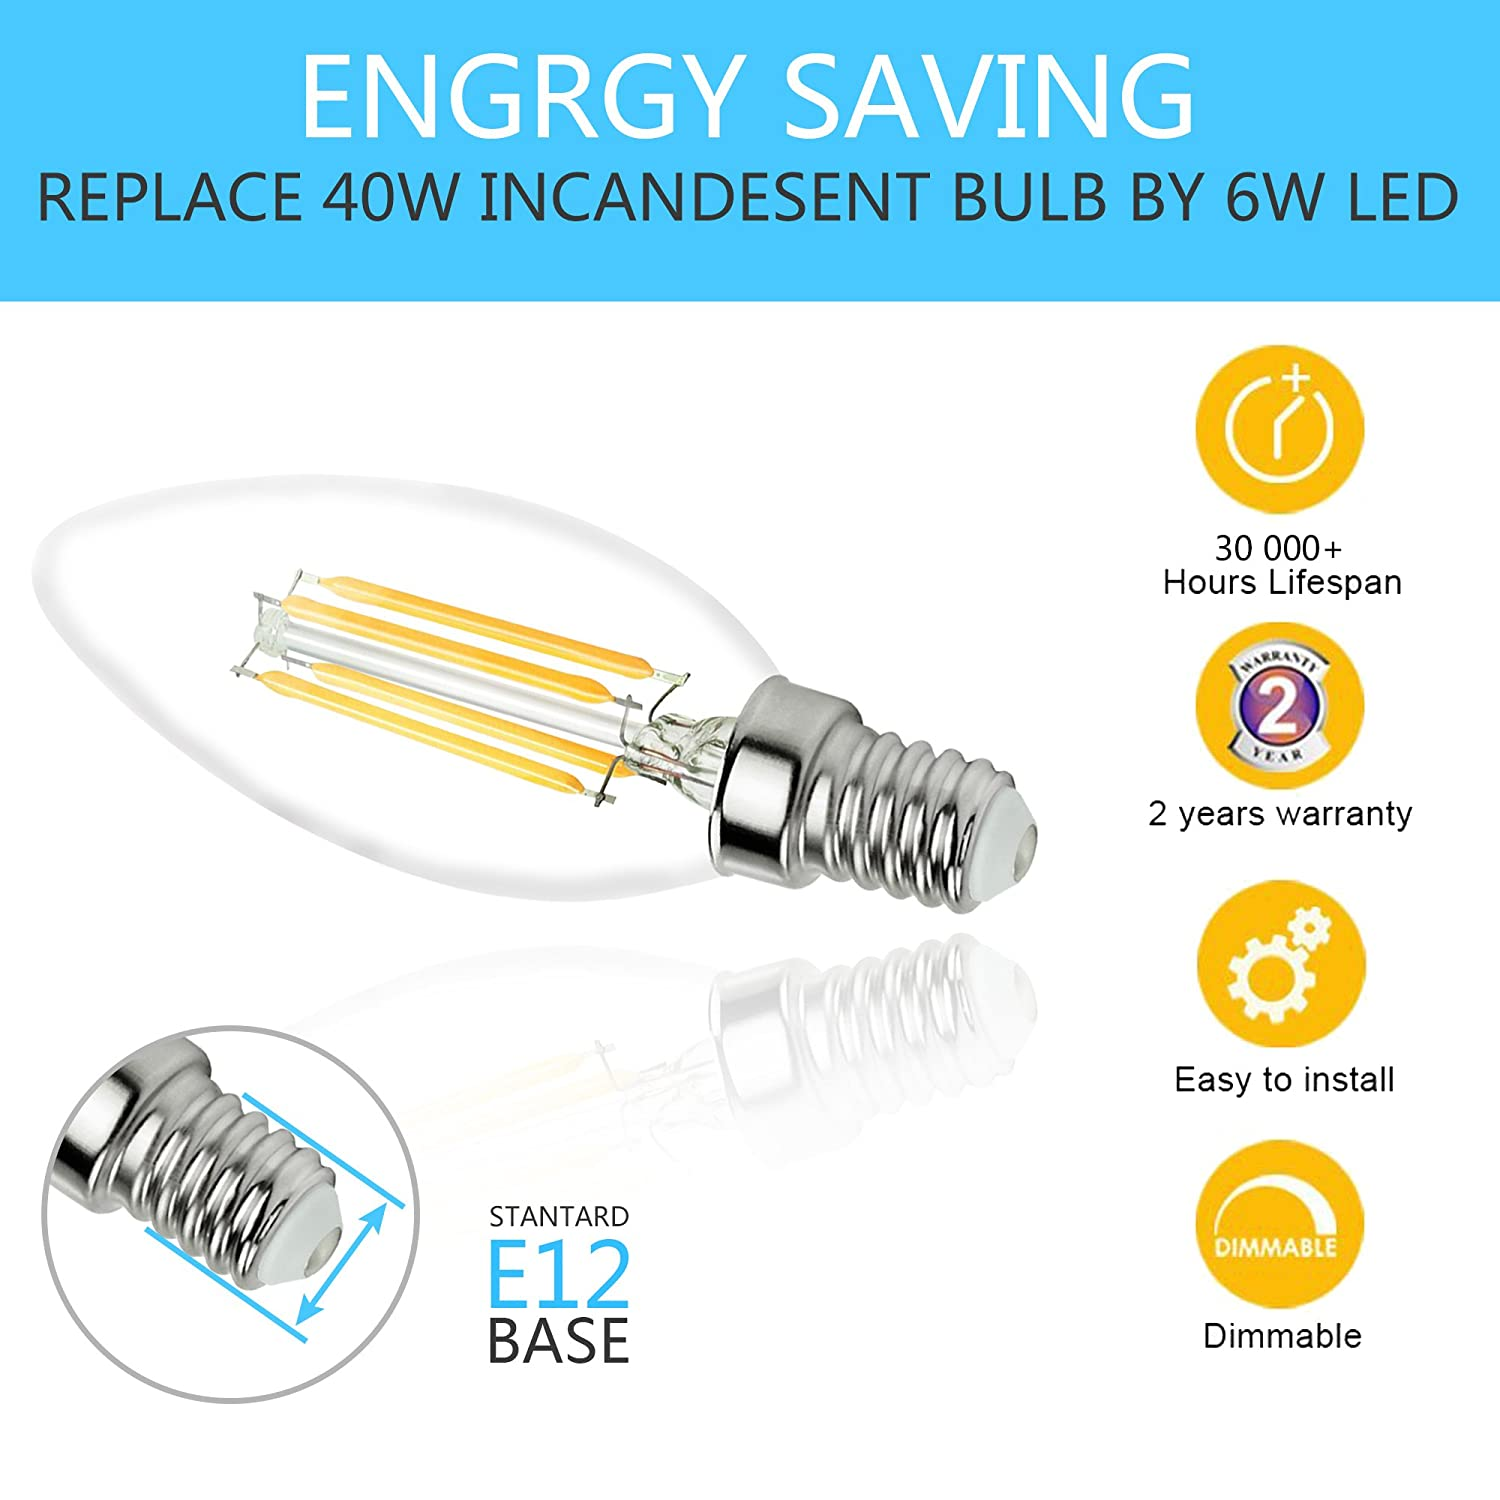 400LM Rekabel Dimmable Candelabra LED Bulb C35 Torpedo Tip E12 base,40-60W Incandescent Replacement 4W Warm White 3000K 12PACK-C35-4500K